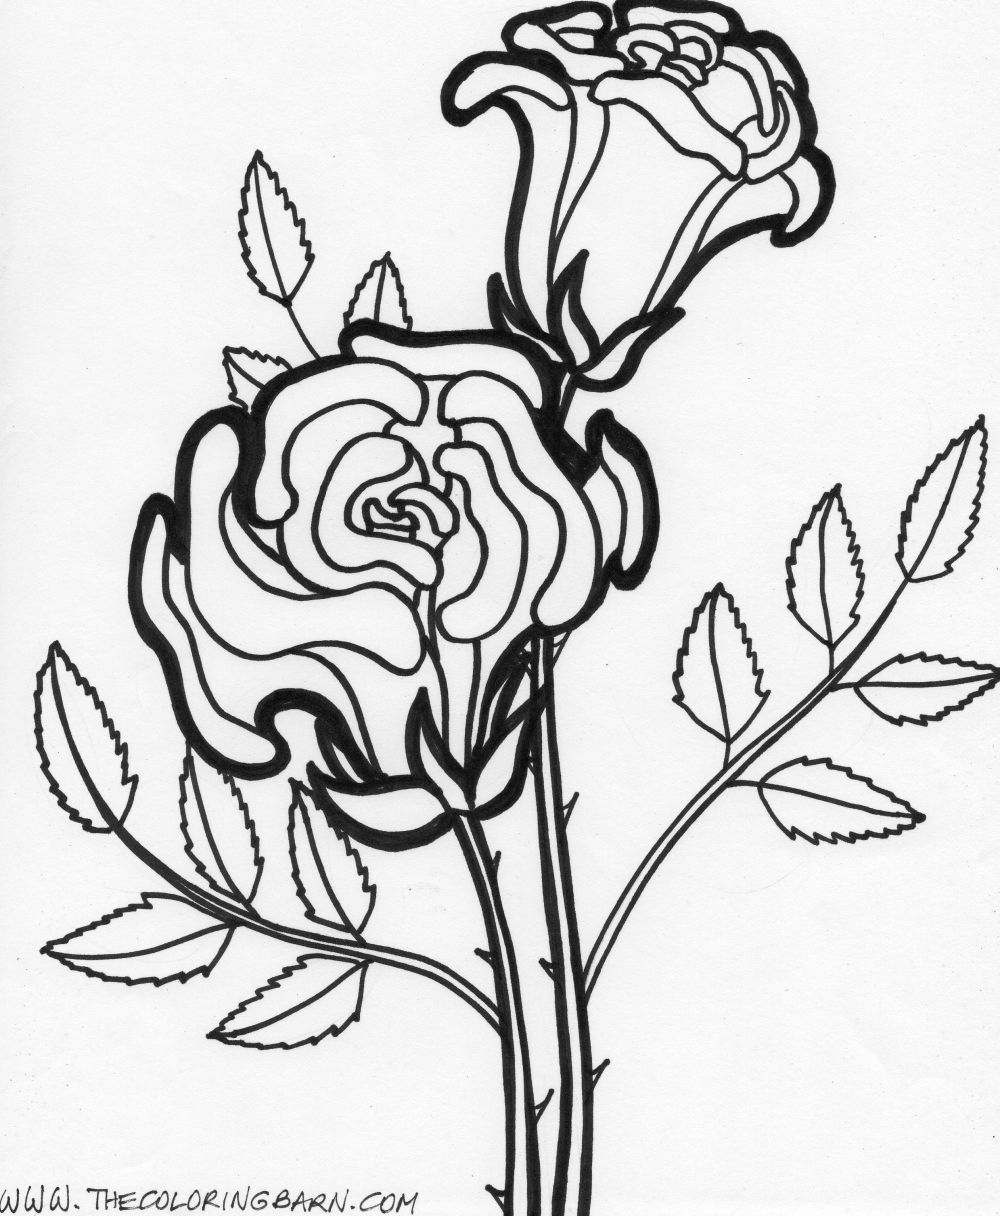 flower coloring pages free printable free printable flower coloring pages for kids best flower pages free printable coloring